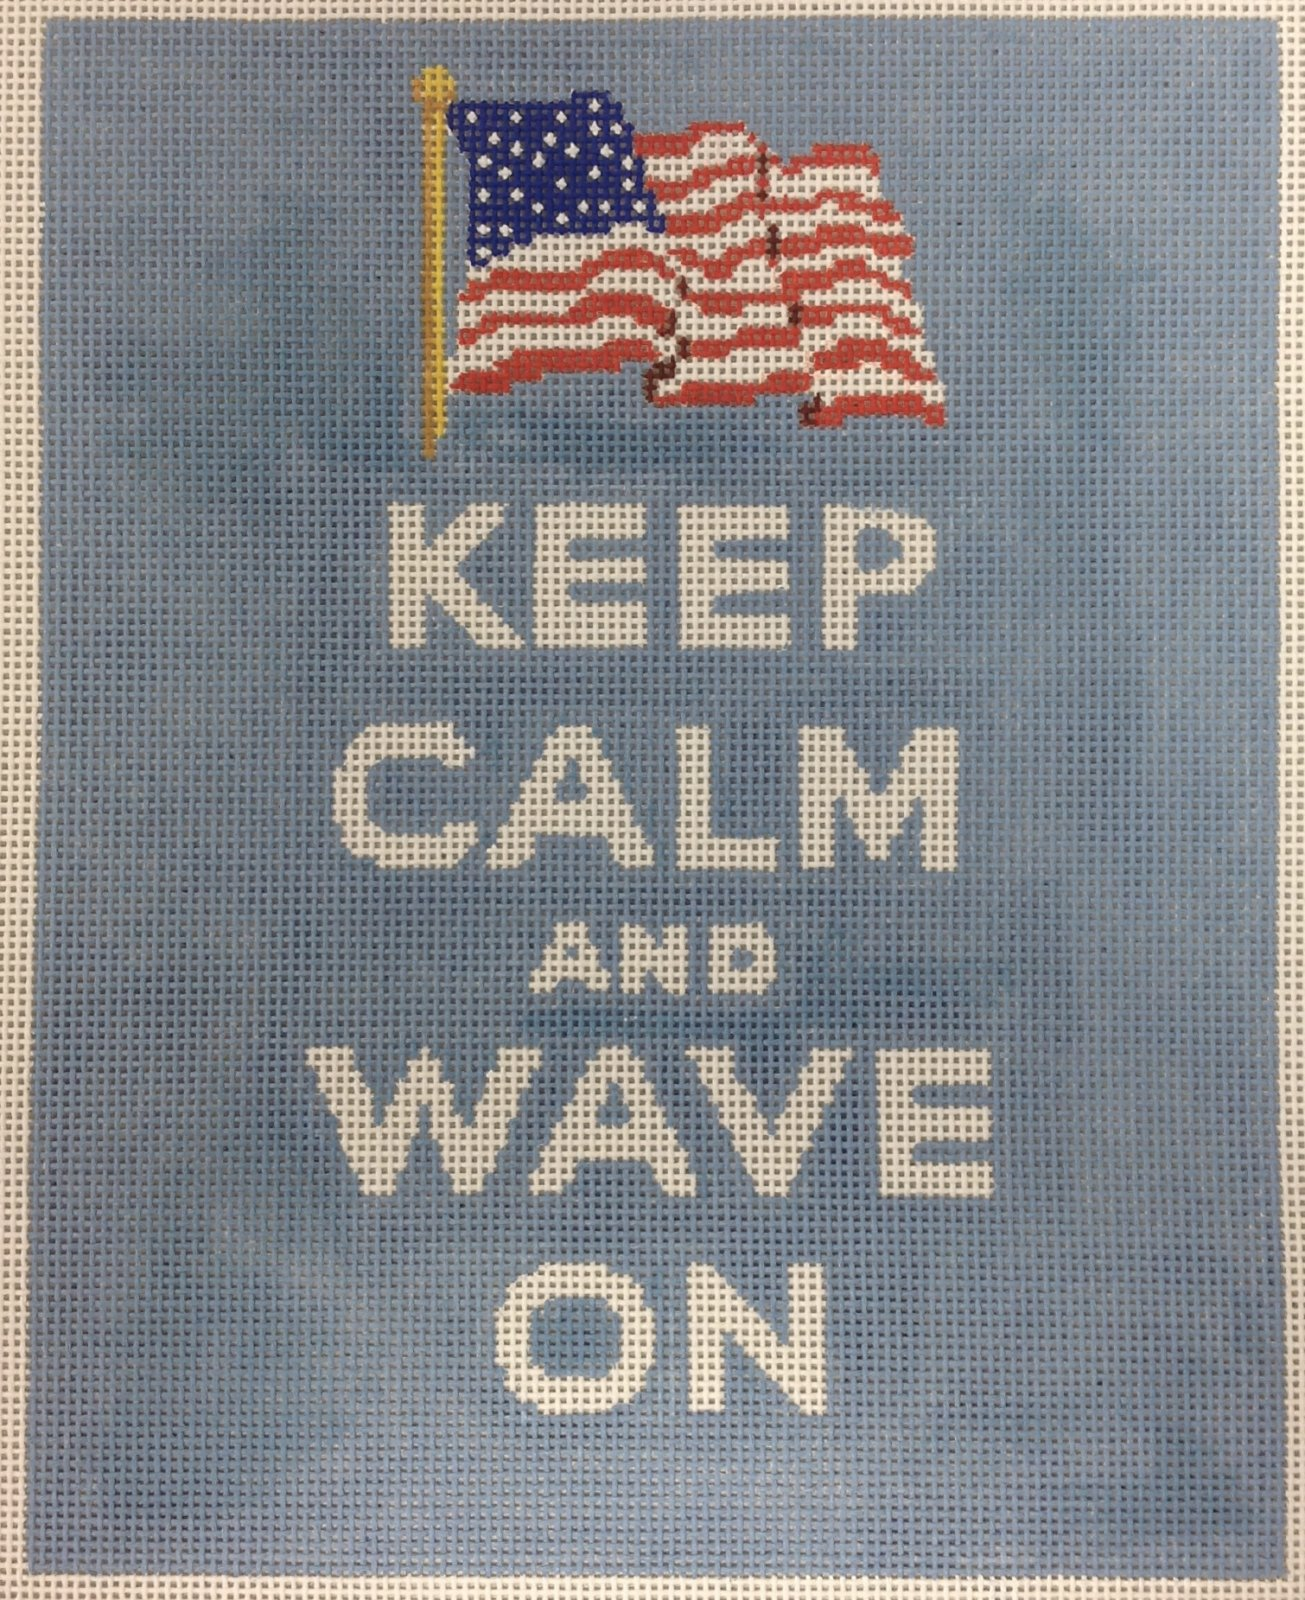 Keep Calm...wave on